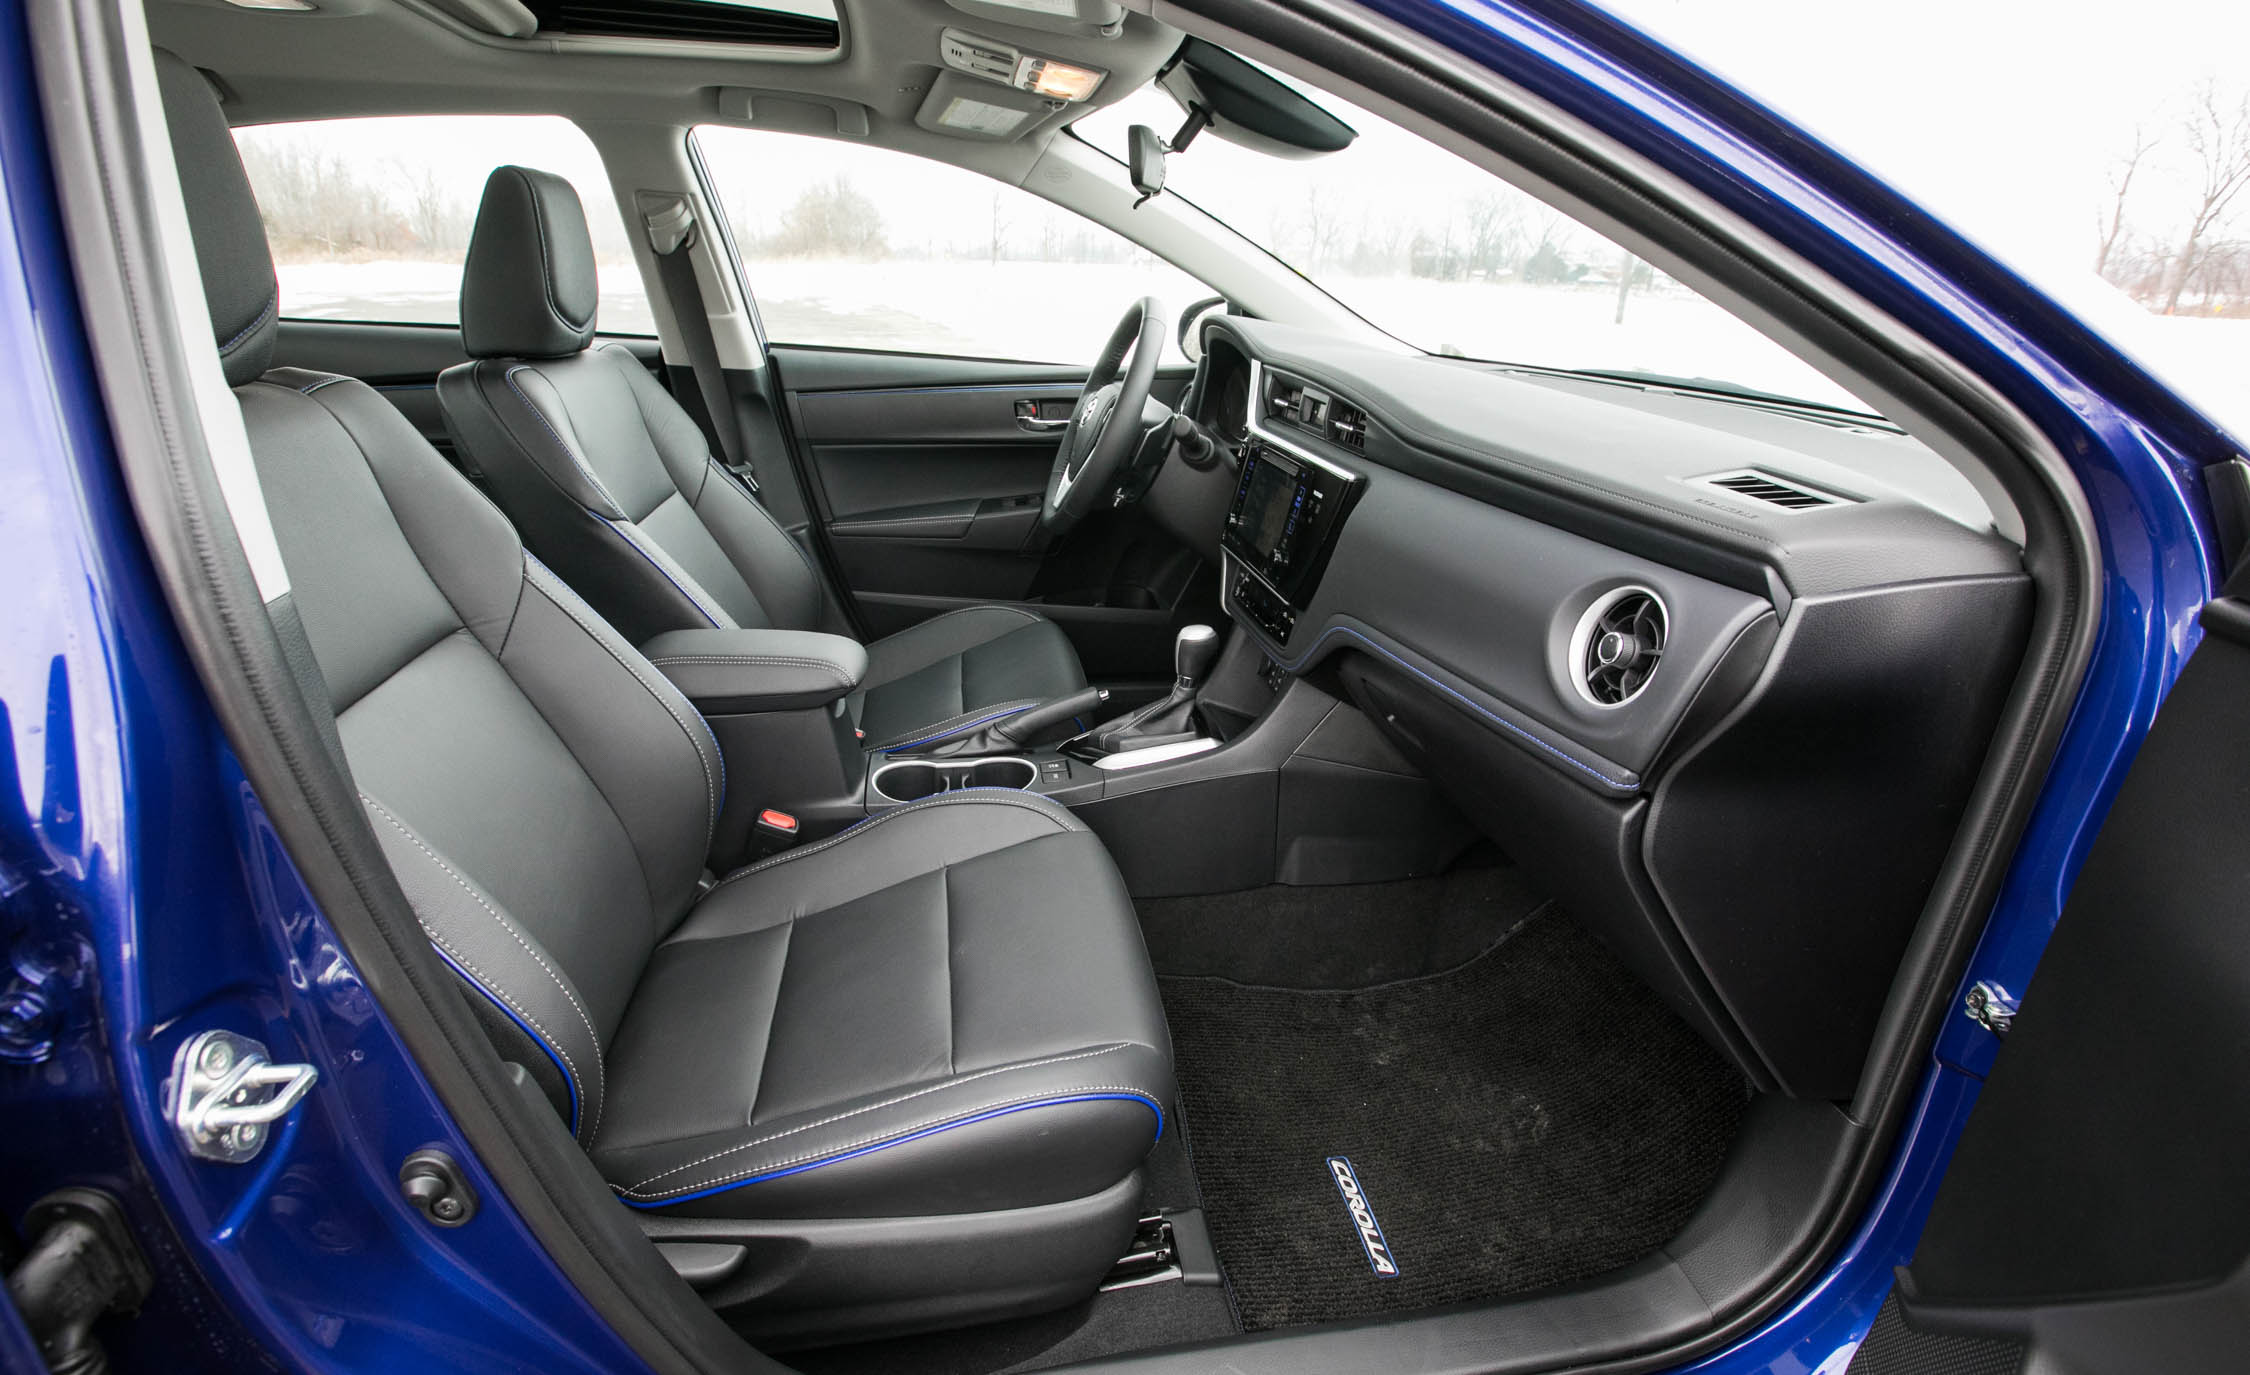 2017 Toyota Corolla XSE Interior Seats Front (Photo 53 of 75)